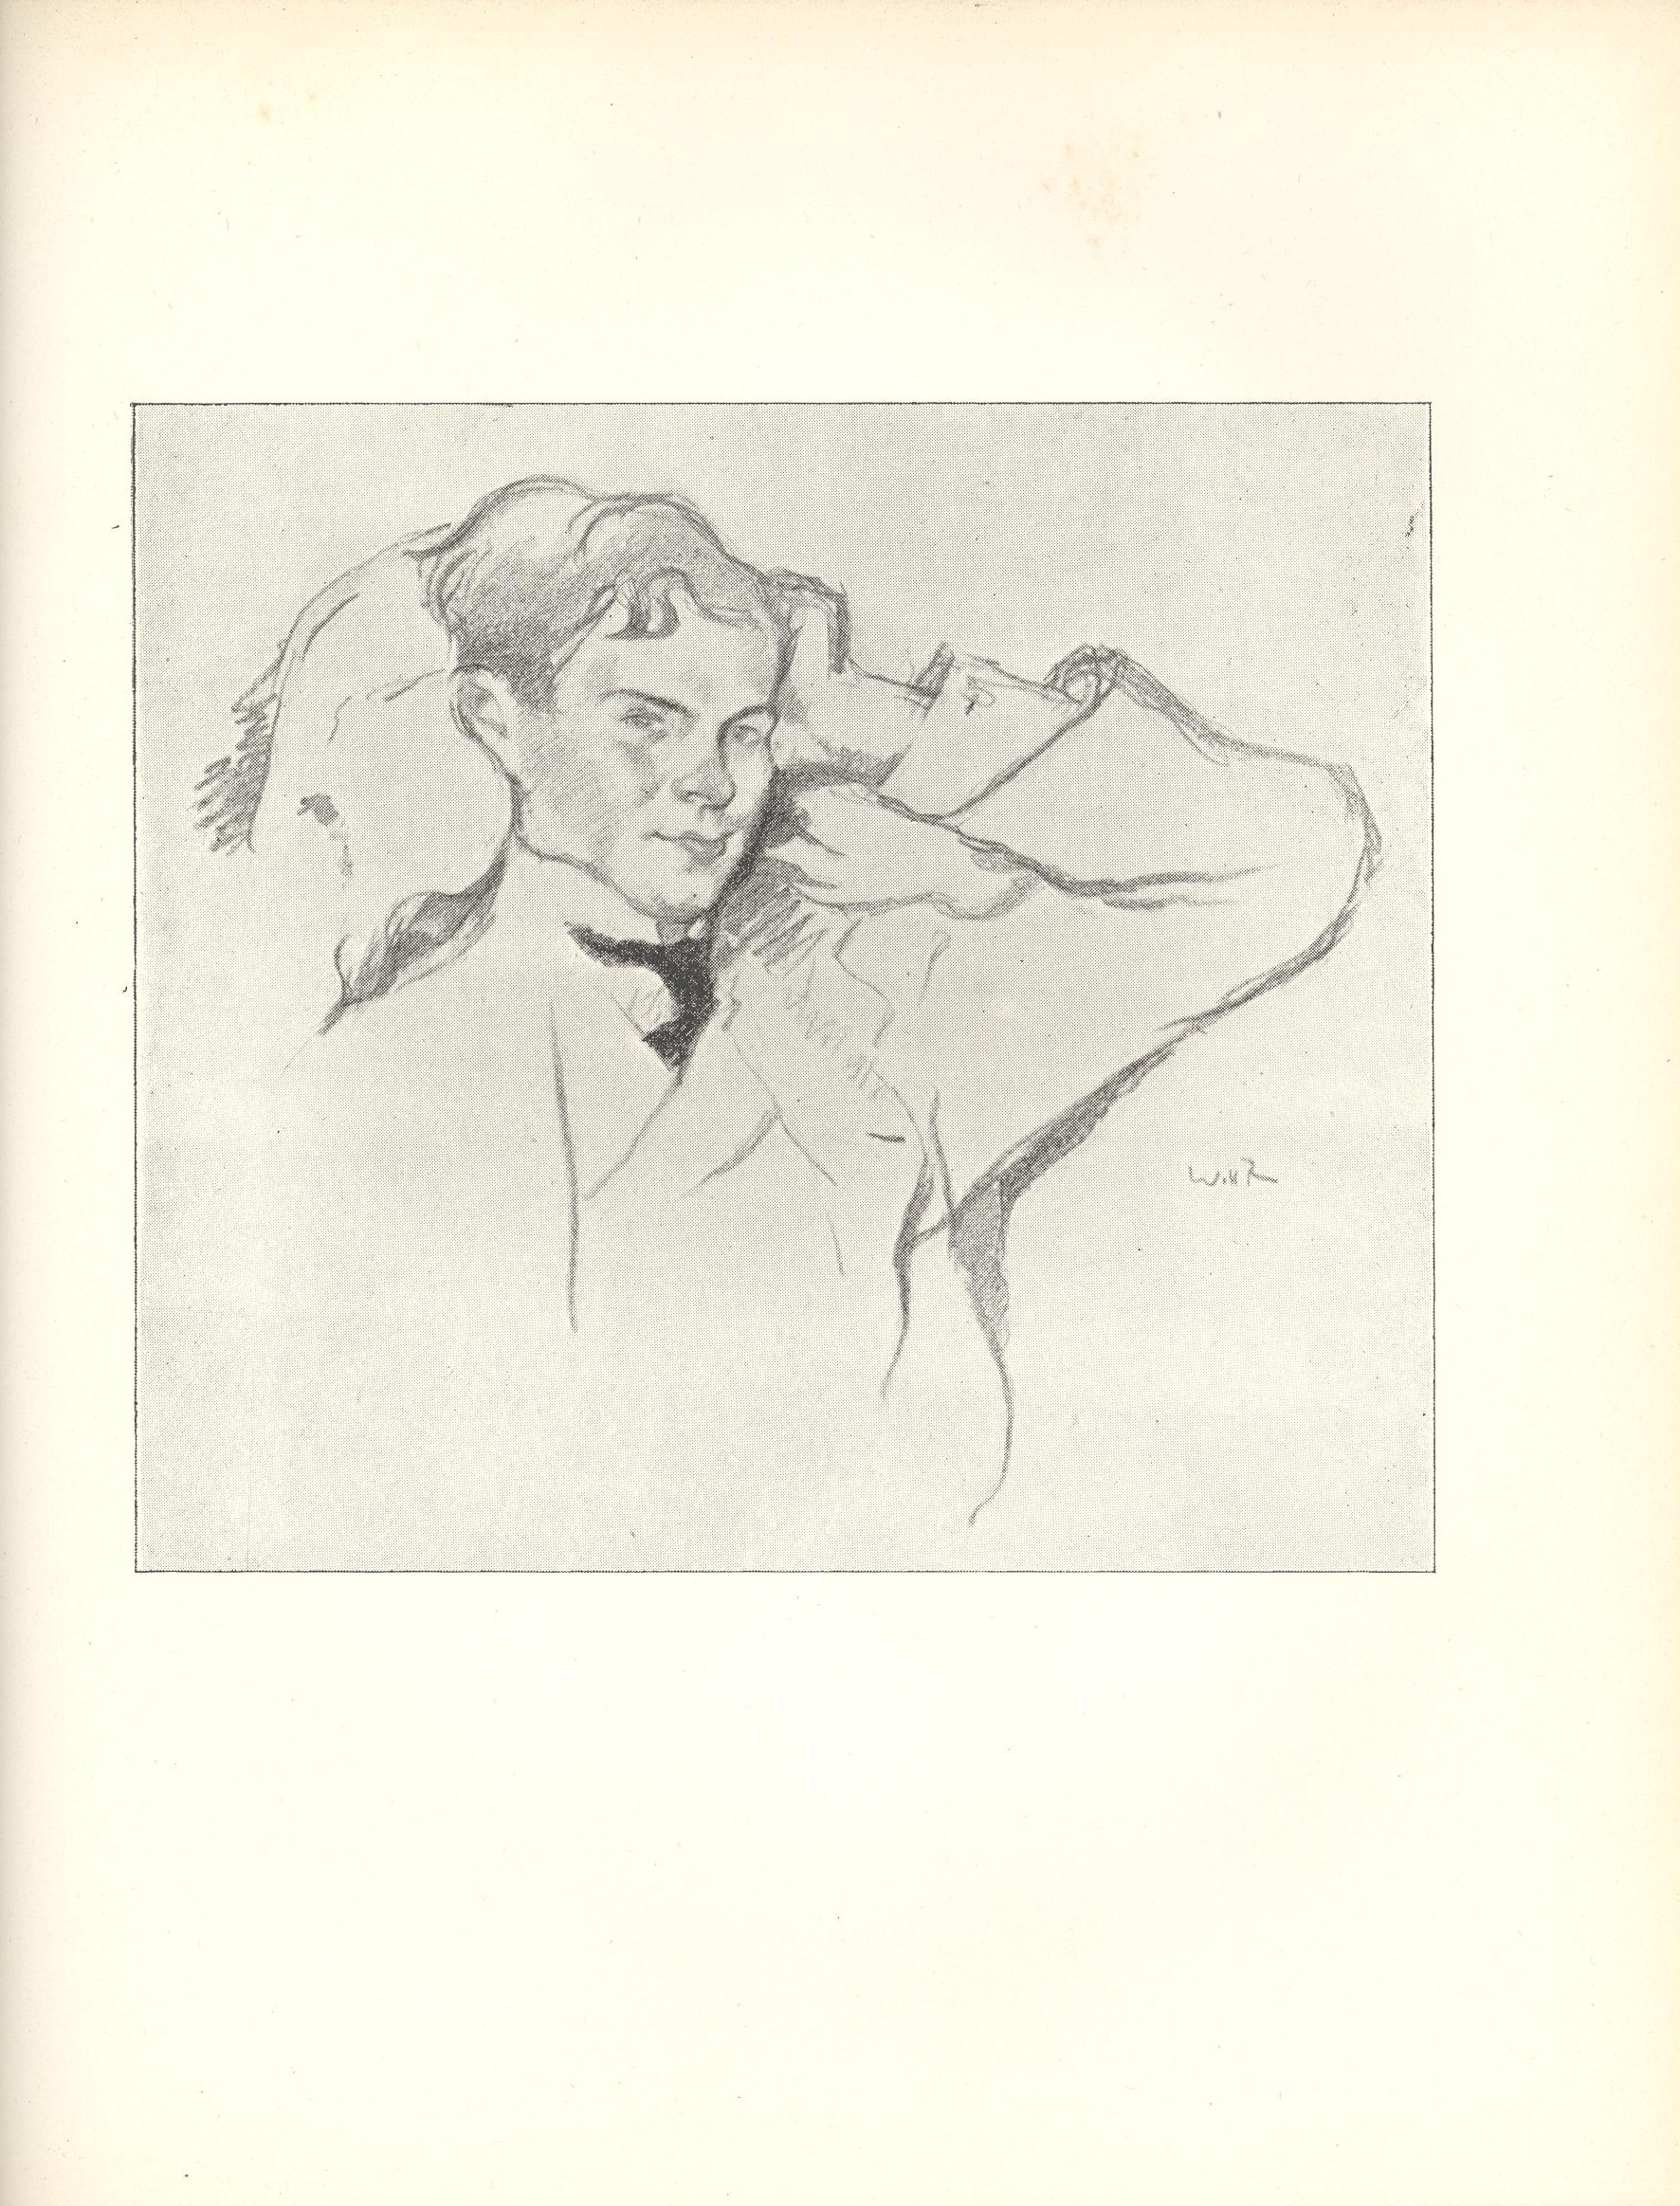 Image is a sketch of a young man the background is open white His head is leaning against a pillow in a 3 4 profile with his body slightly left of centre The pillow and his torso take up most of the space on the left half of the image His left arm is raised up to rest on his temple taking up the right side of the frame He is wearing a suit and tie Artist s name is on the middle right side of image under the man s arm The image is vertically displayed